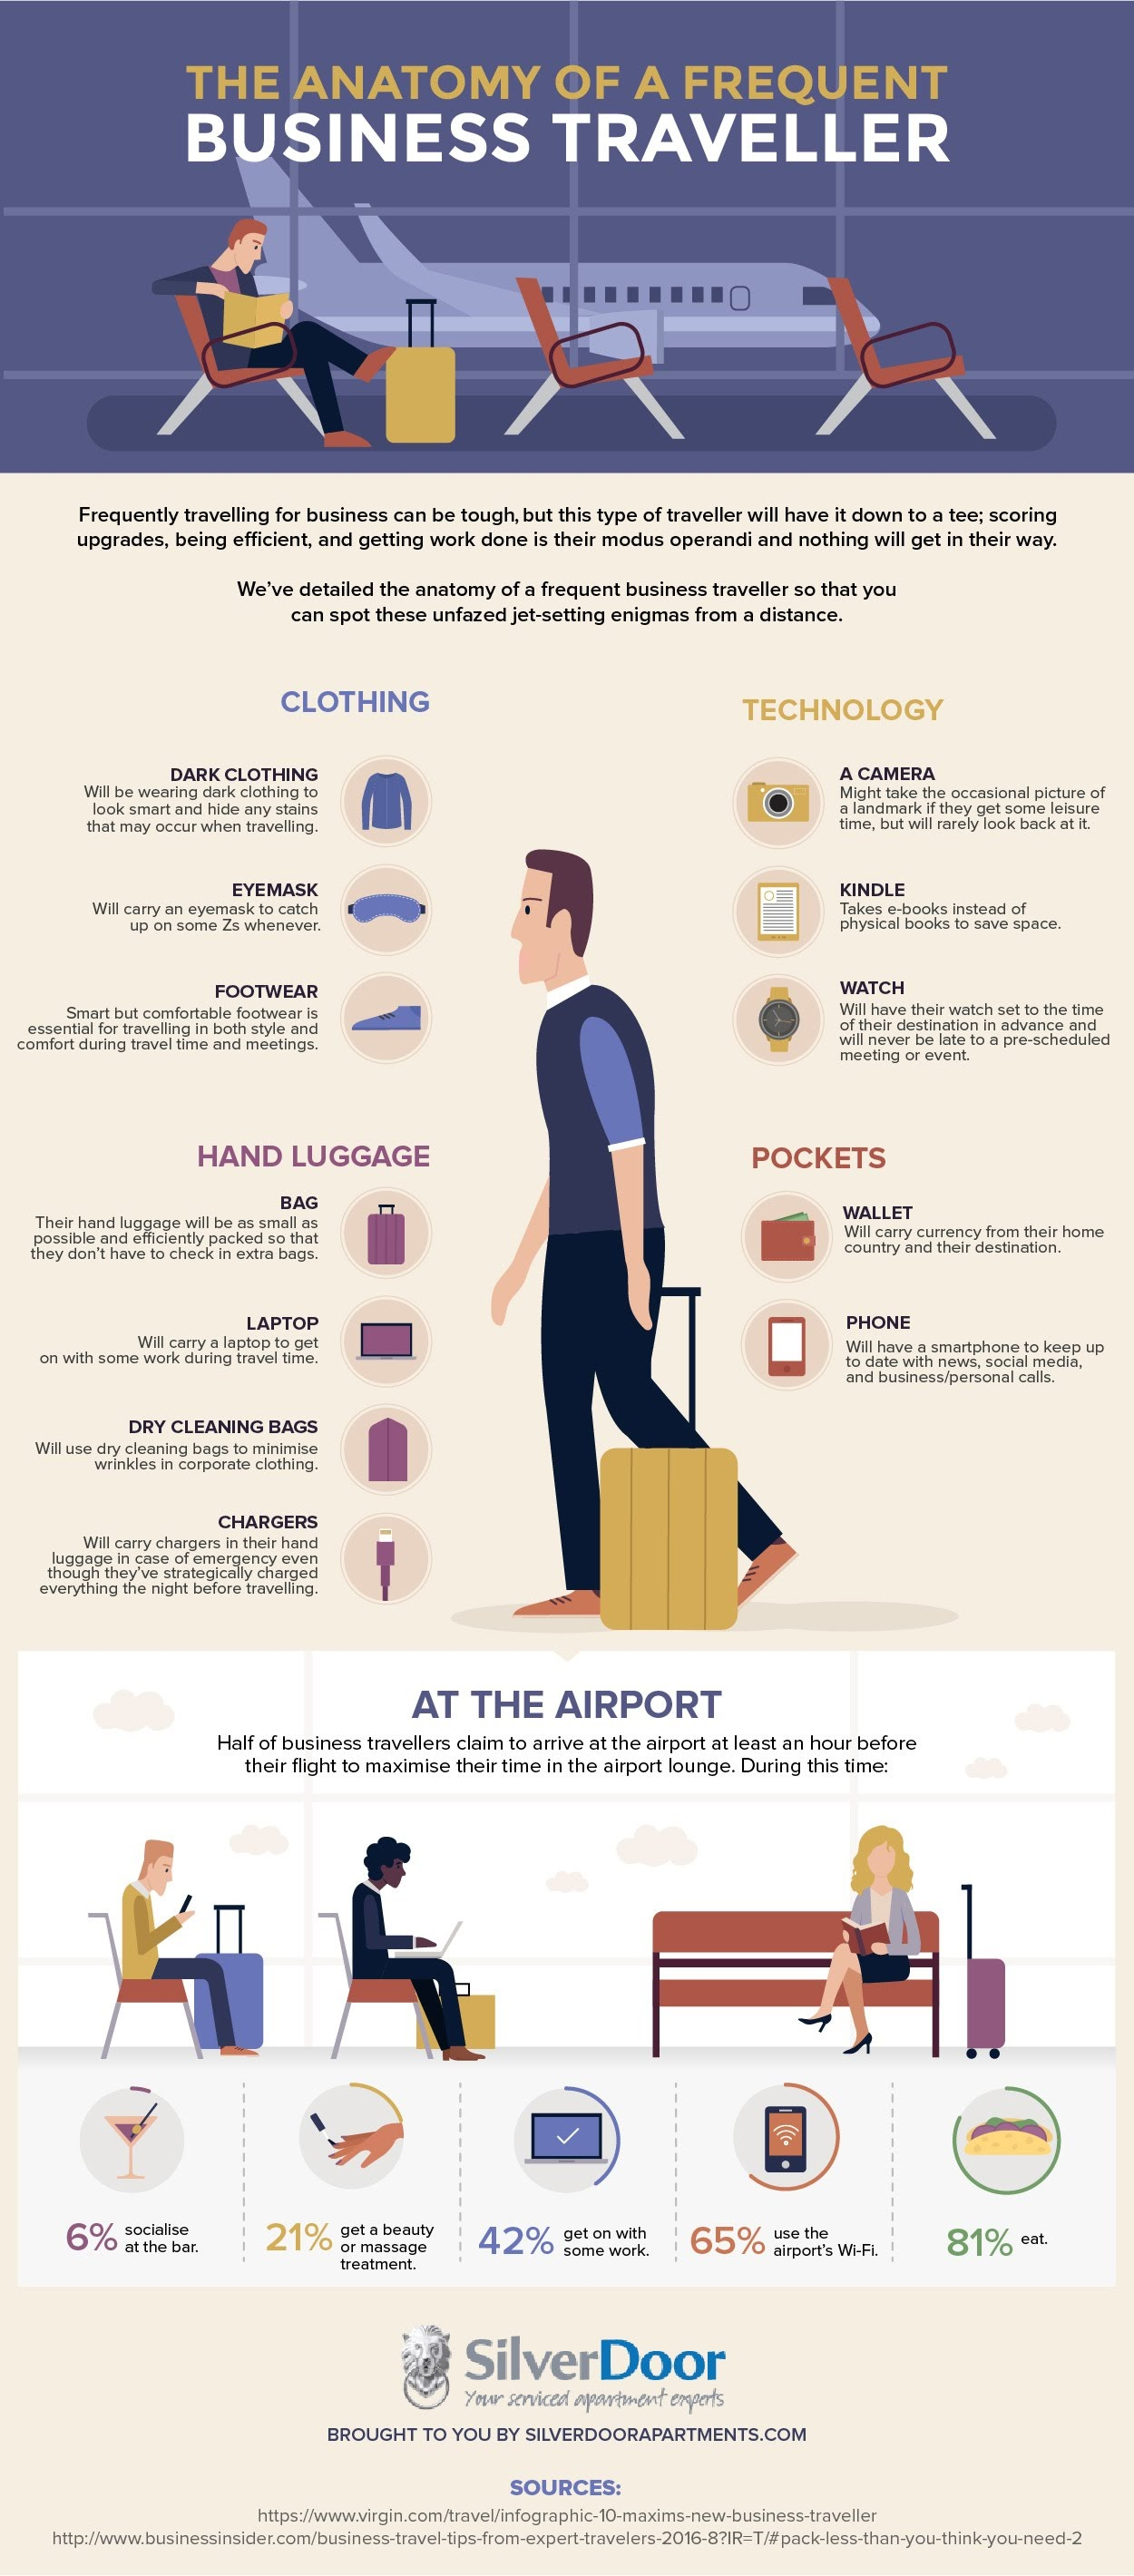 The Anatomy Of a Frequent Business Traveller